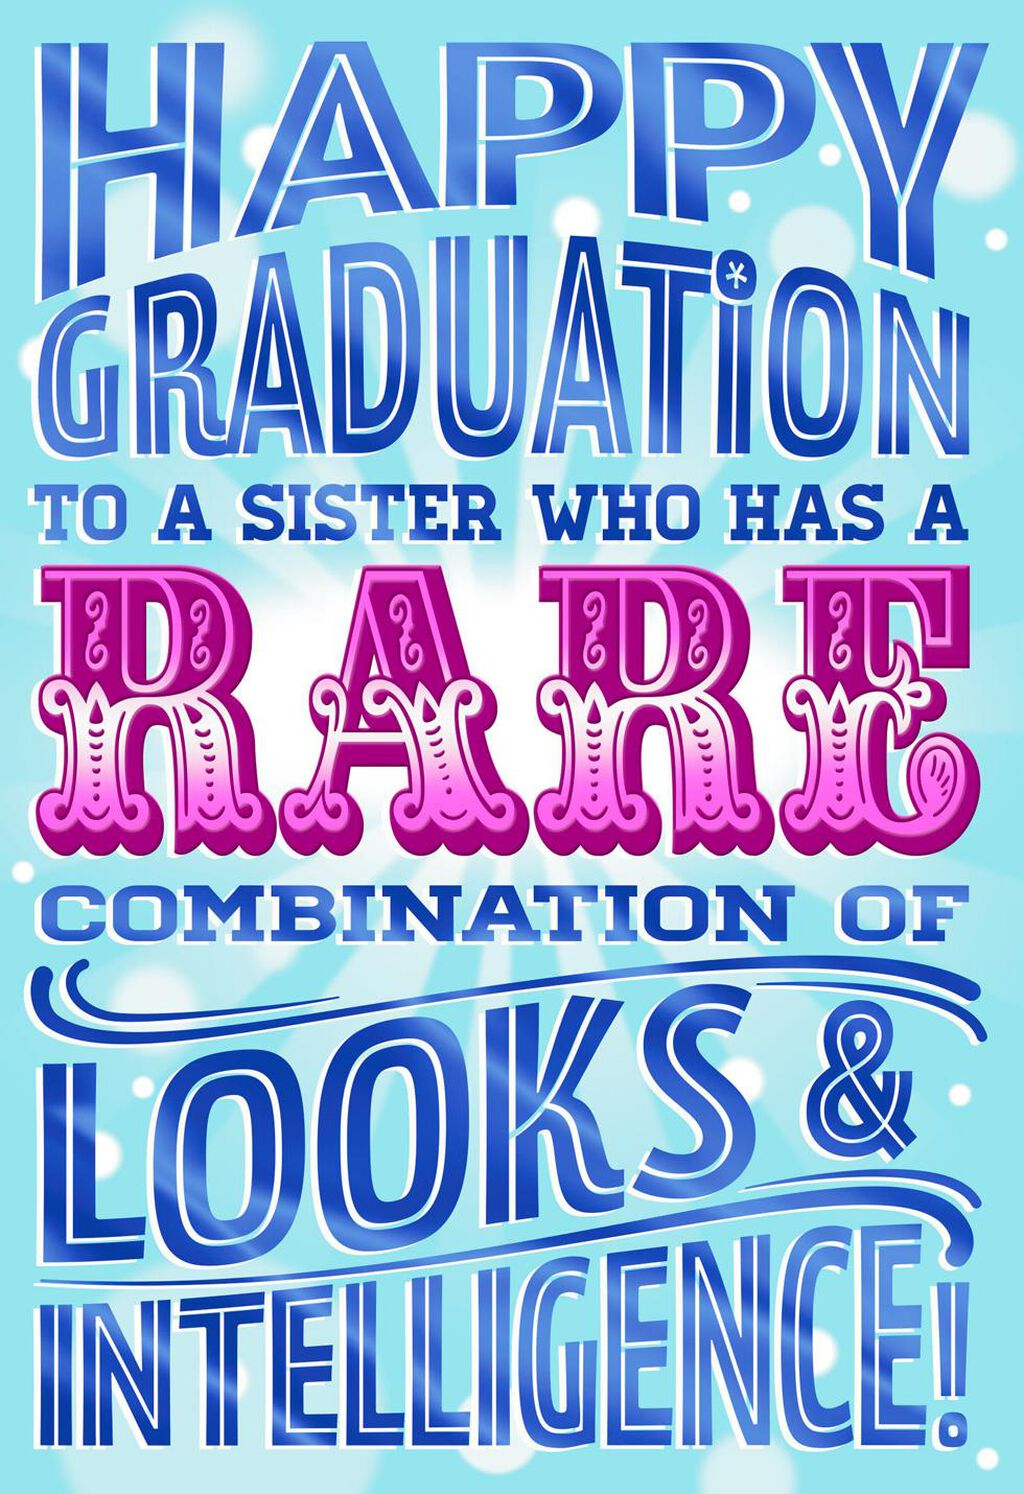 Compliments for Sister Graduation Card - Greeting Cards - Hallmark